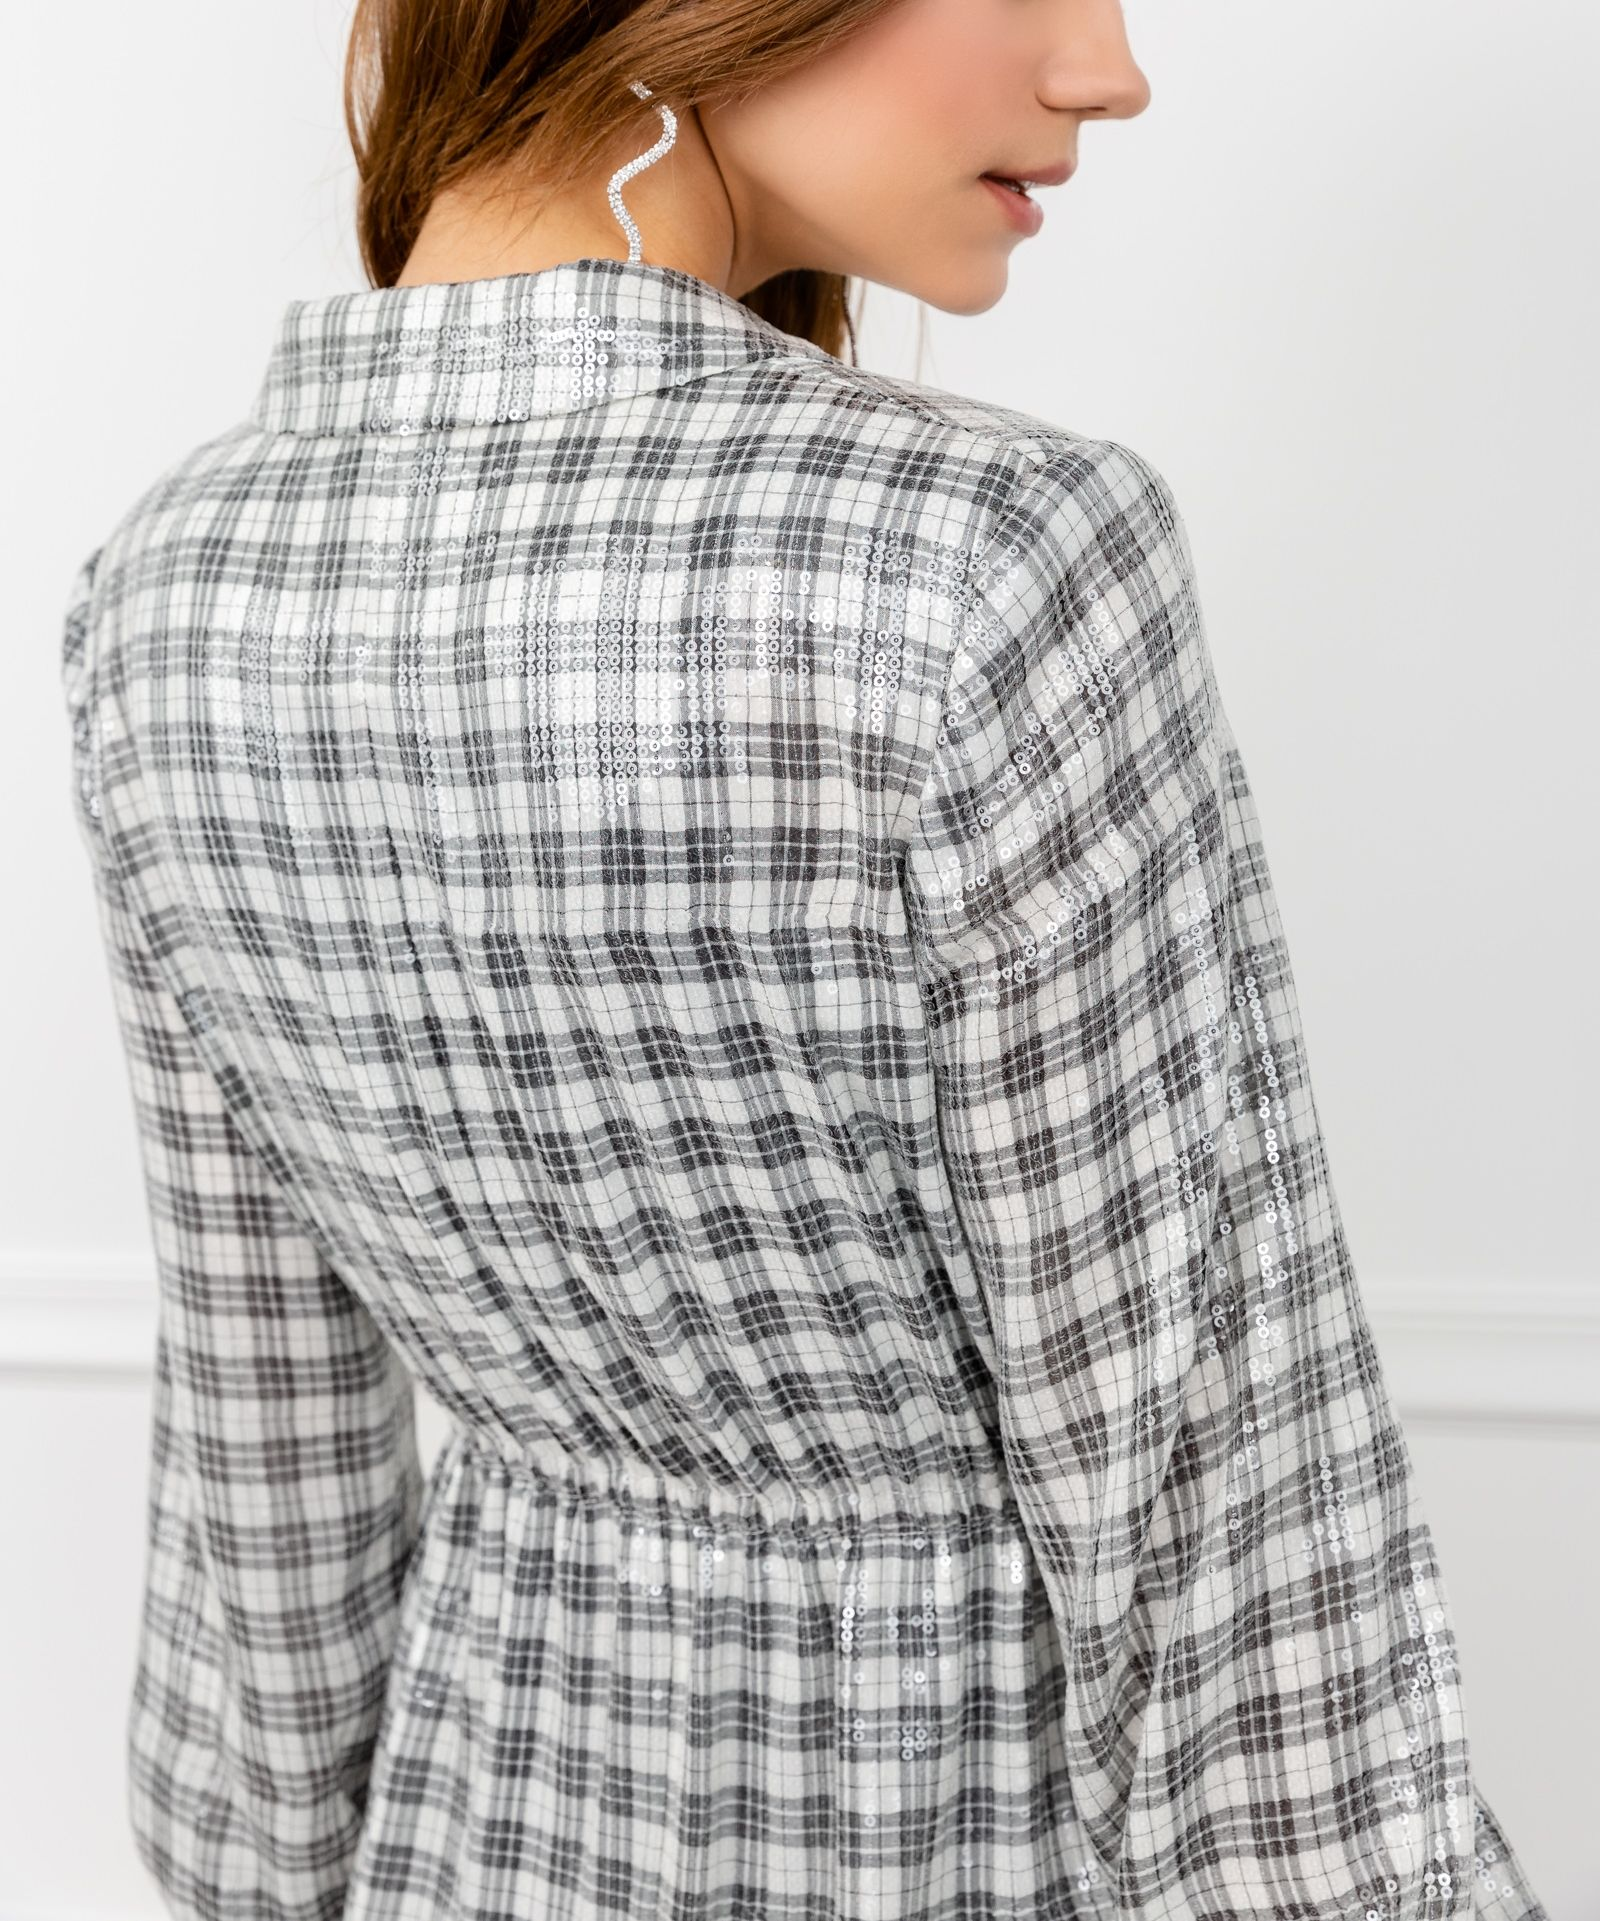 Sequin Gingham Long Sleeve Wrap Jacket by J.ING Women's Jackets